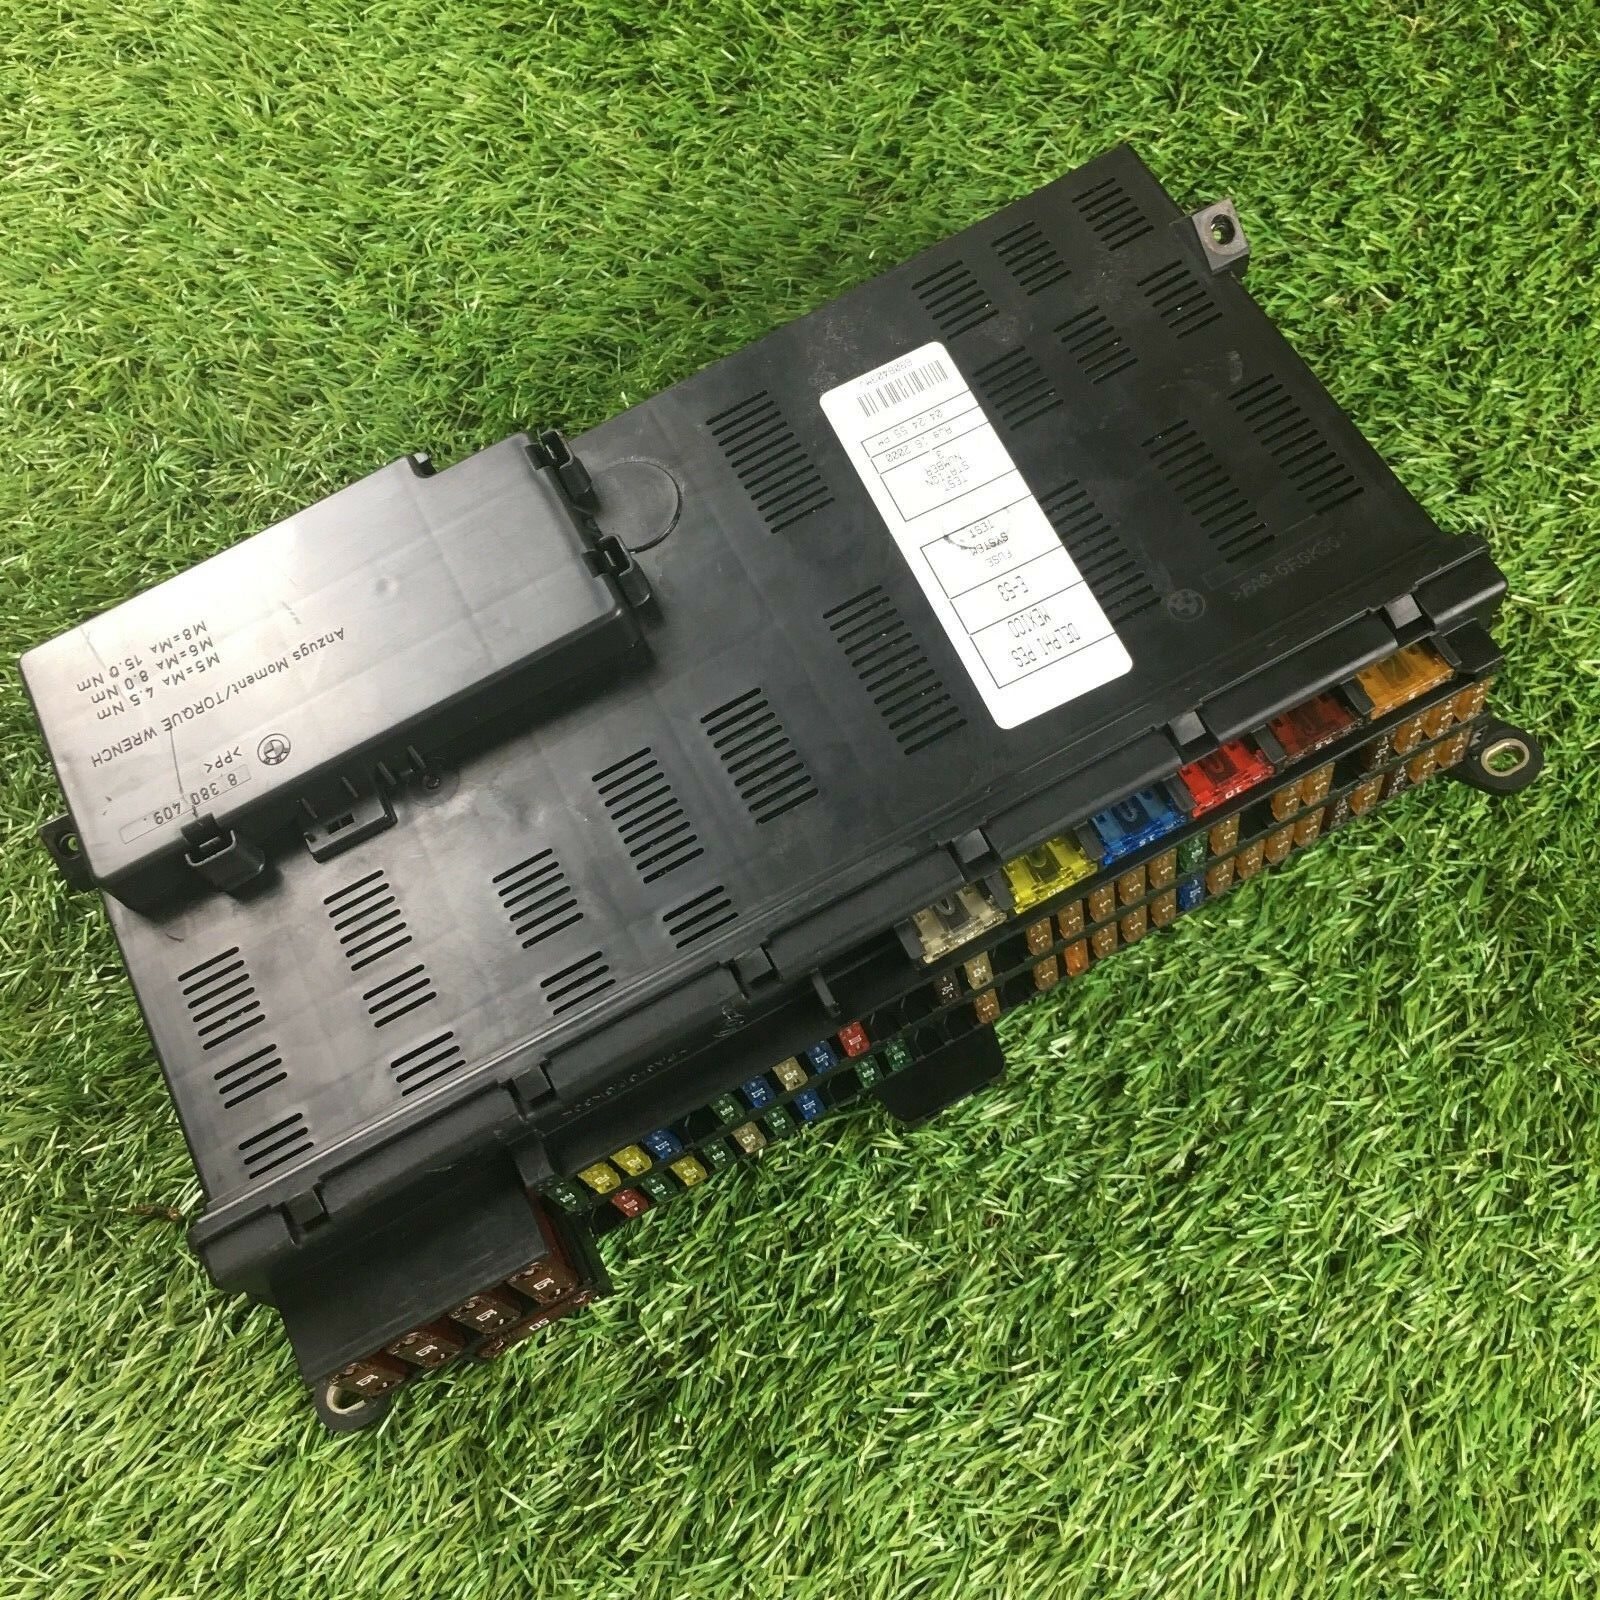 Bmw X5 E53 Fuse Box Relay Board Sam Unit Fusebox 8380407 M6 1 Of 3only Available